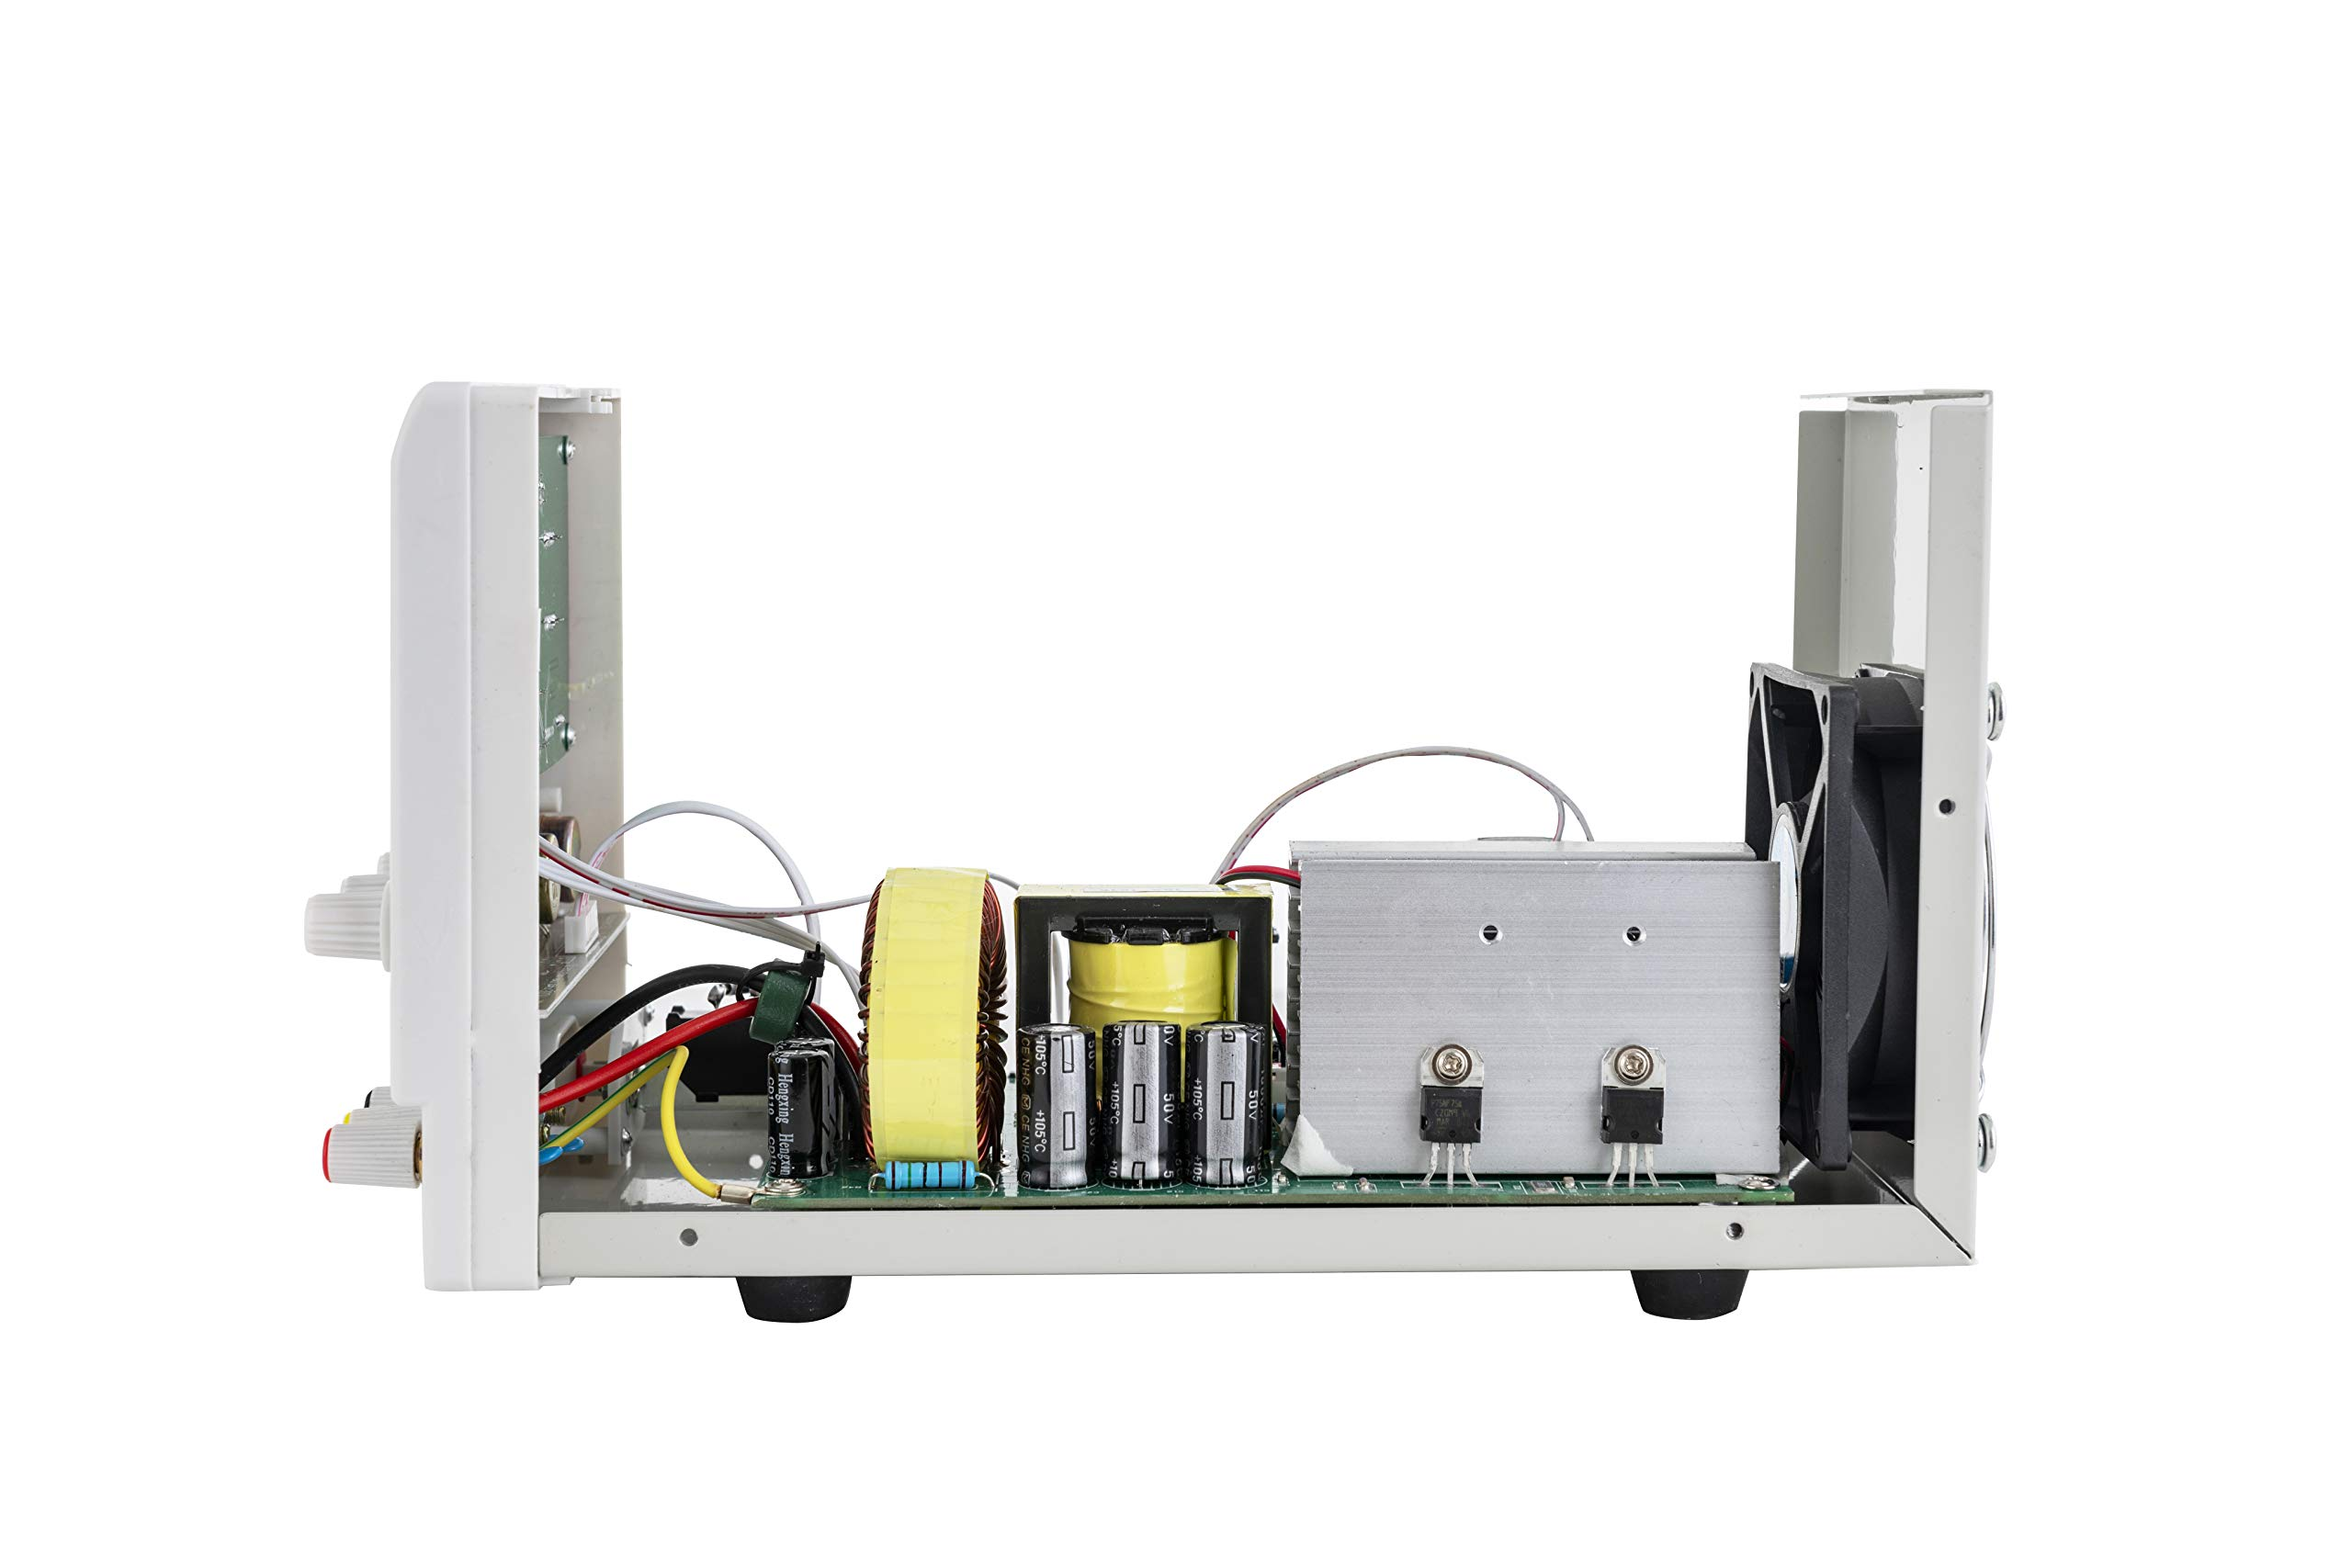 SUNCOO Variable DC Power Supply 30V 5A Adjustable Regulated Lab Bench Power Supply with Digital LED Display Alligator Clip Cable, US Standard Cord by SUNCOO (Image #9)